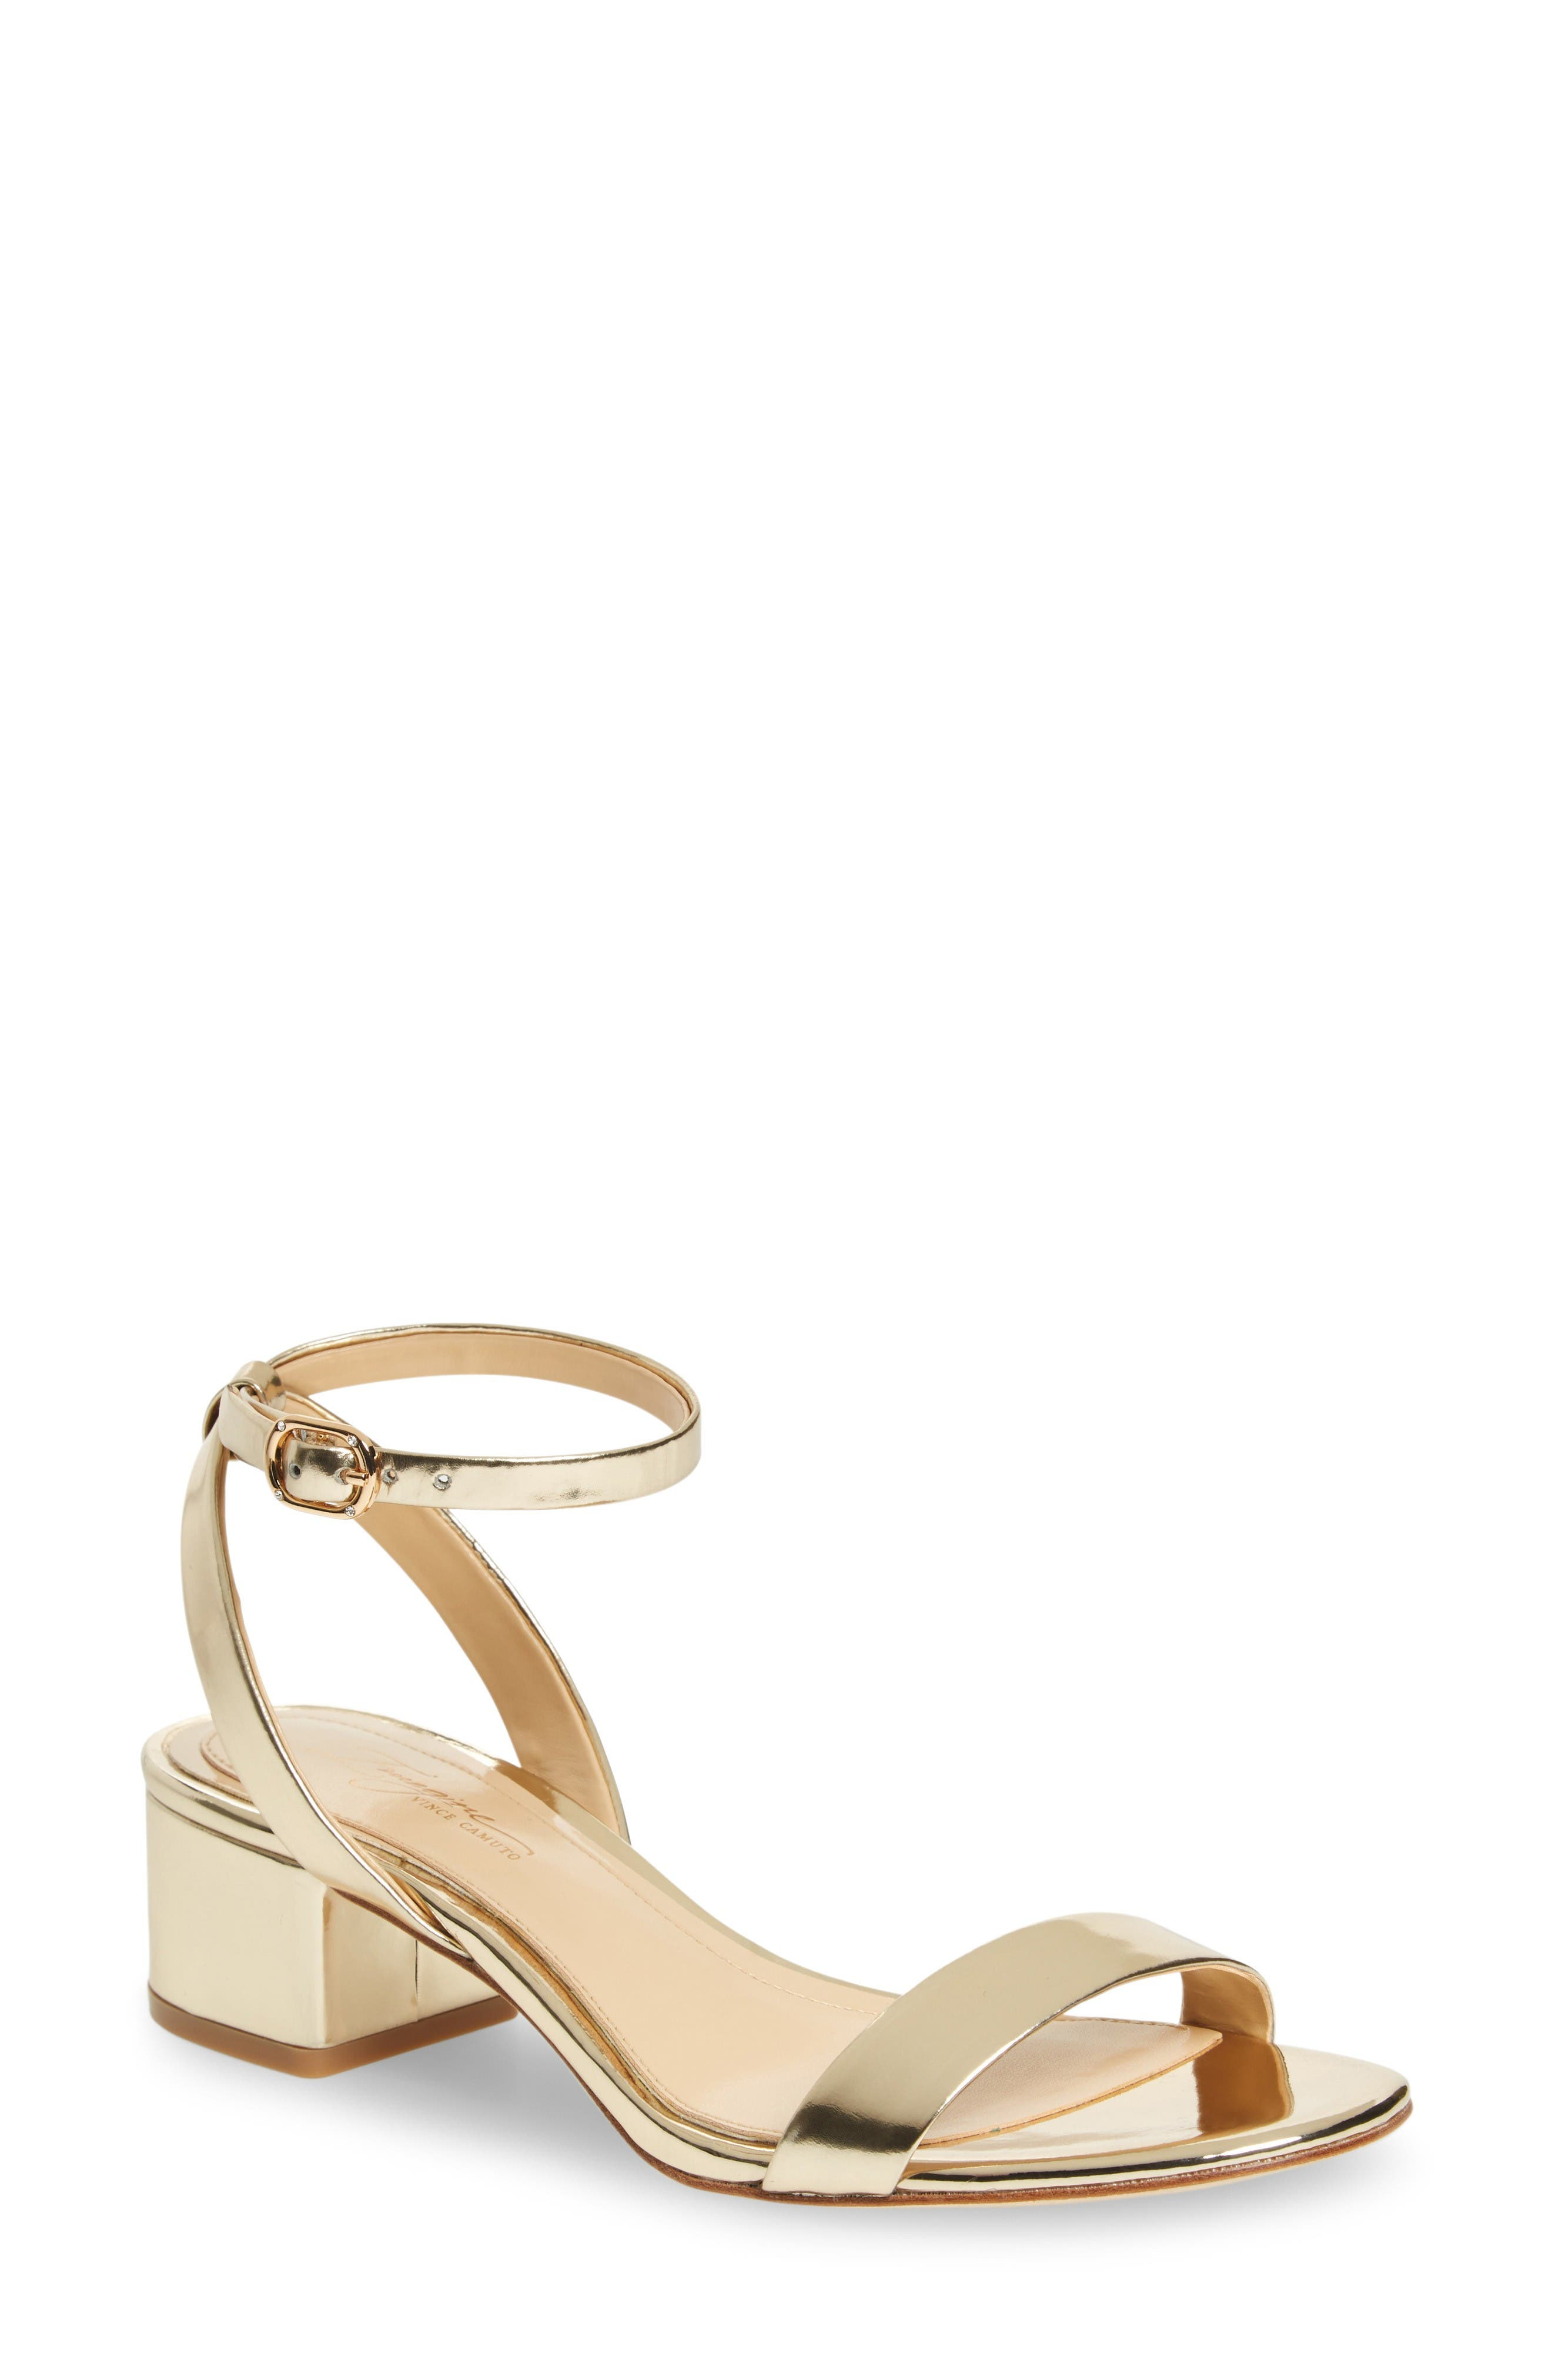 Imagine Vince Camuto Bavel Sandal,                             Main thumbnail 1, color,                             Soft Gold Leather